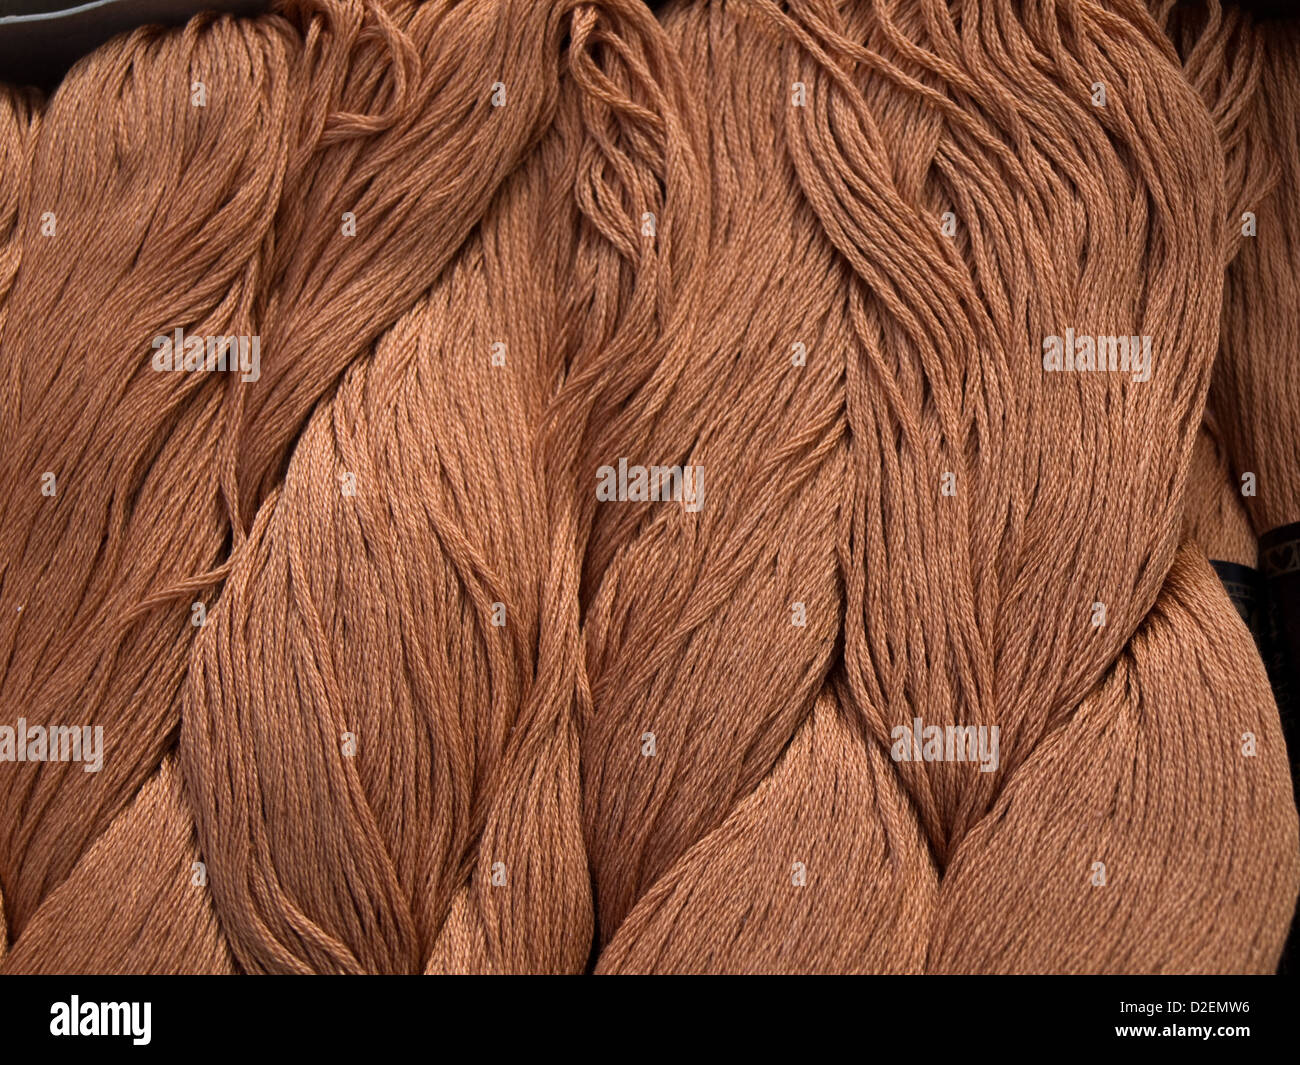 skeins of cotton - Stock Image